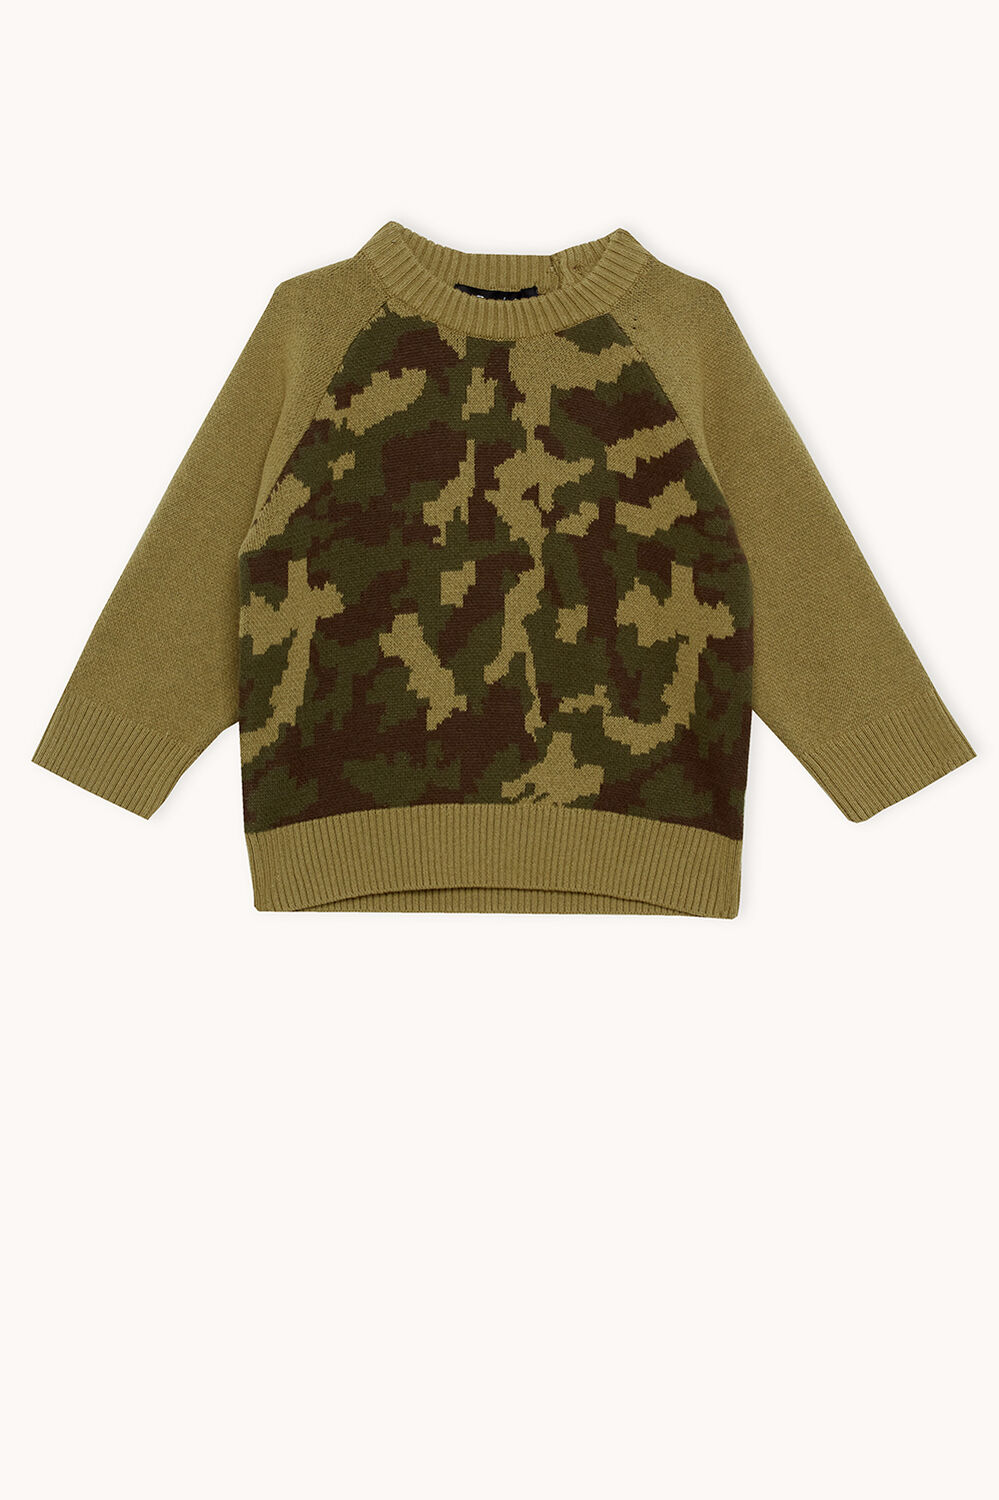 CAMO KNIT SWEATER in colour BURNT OLIVE